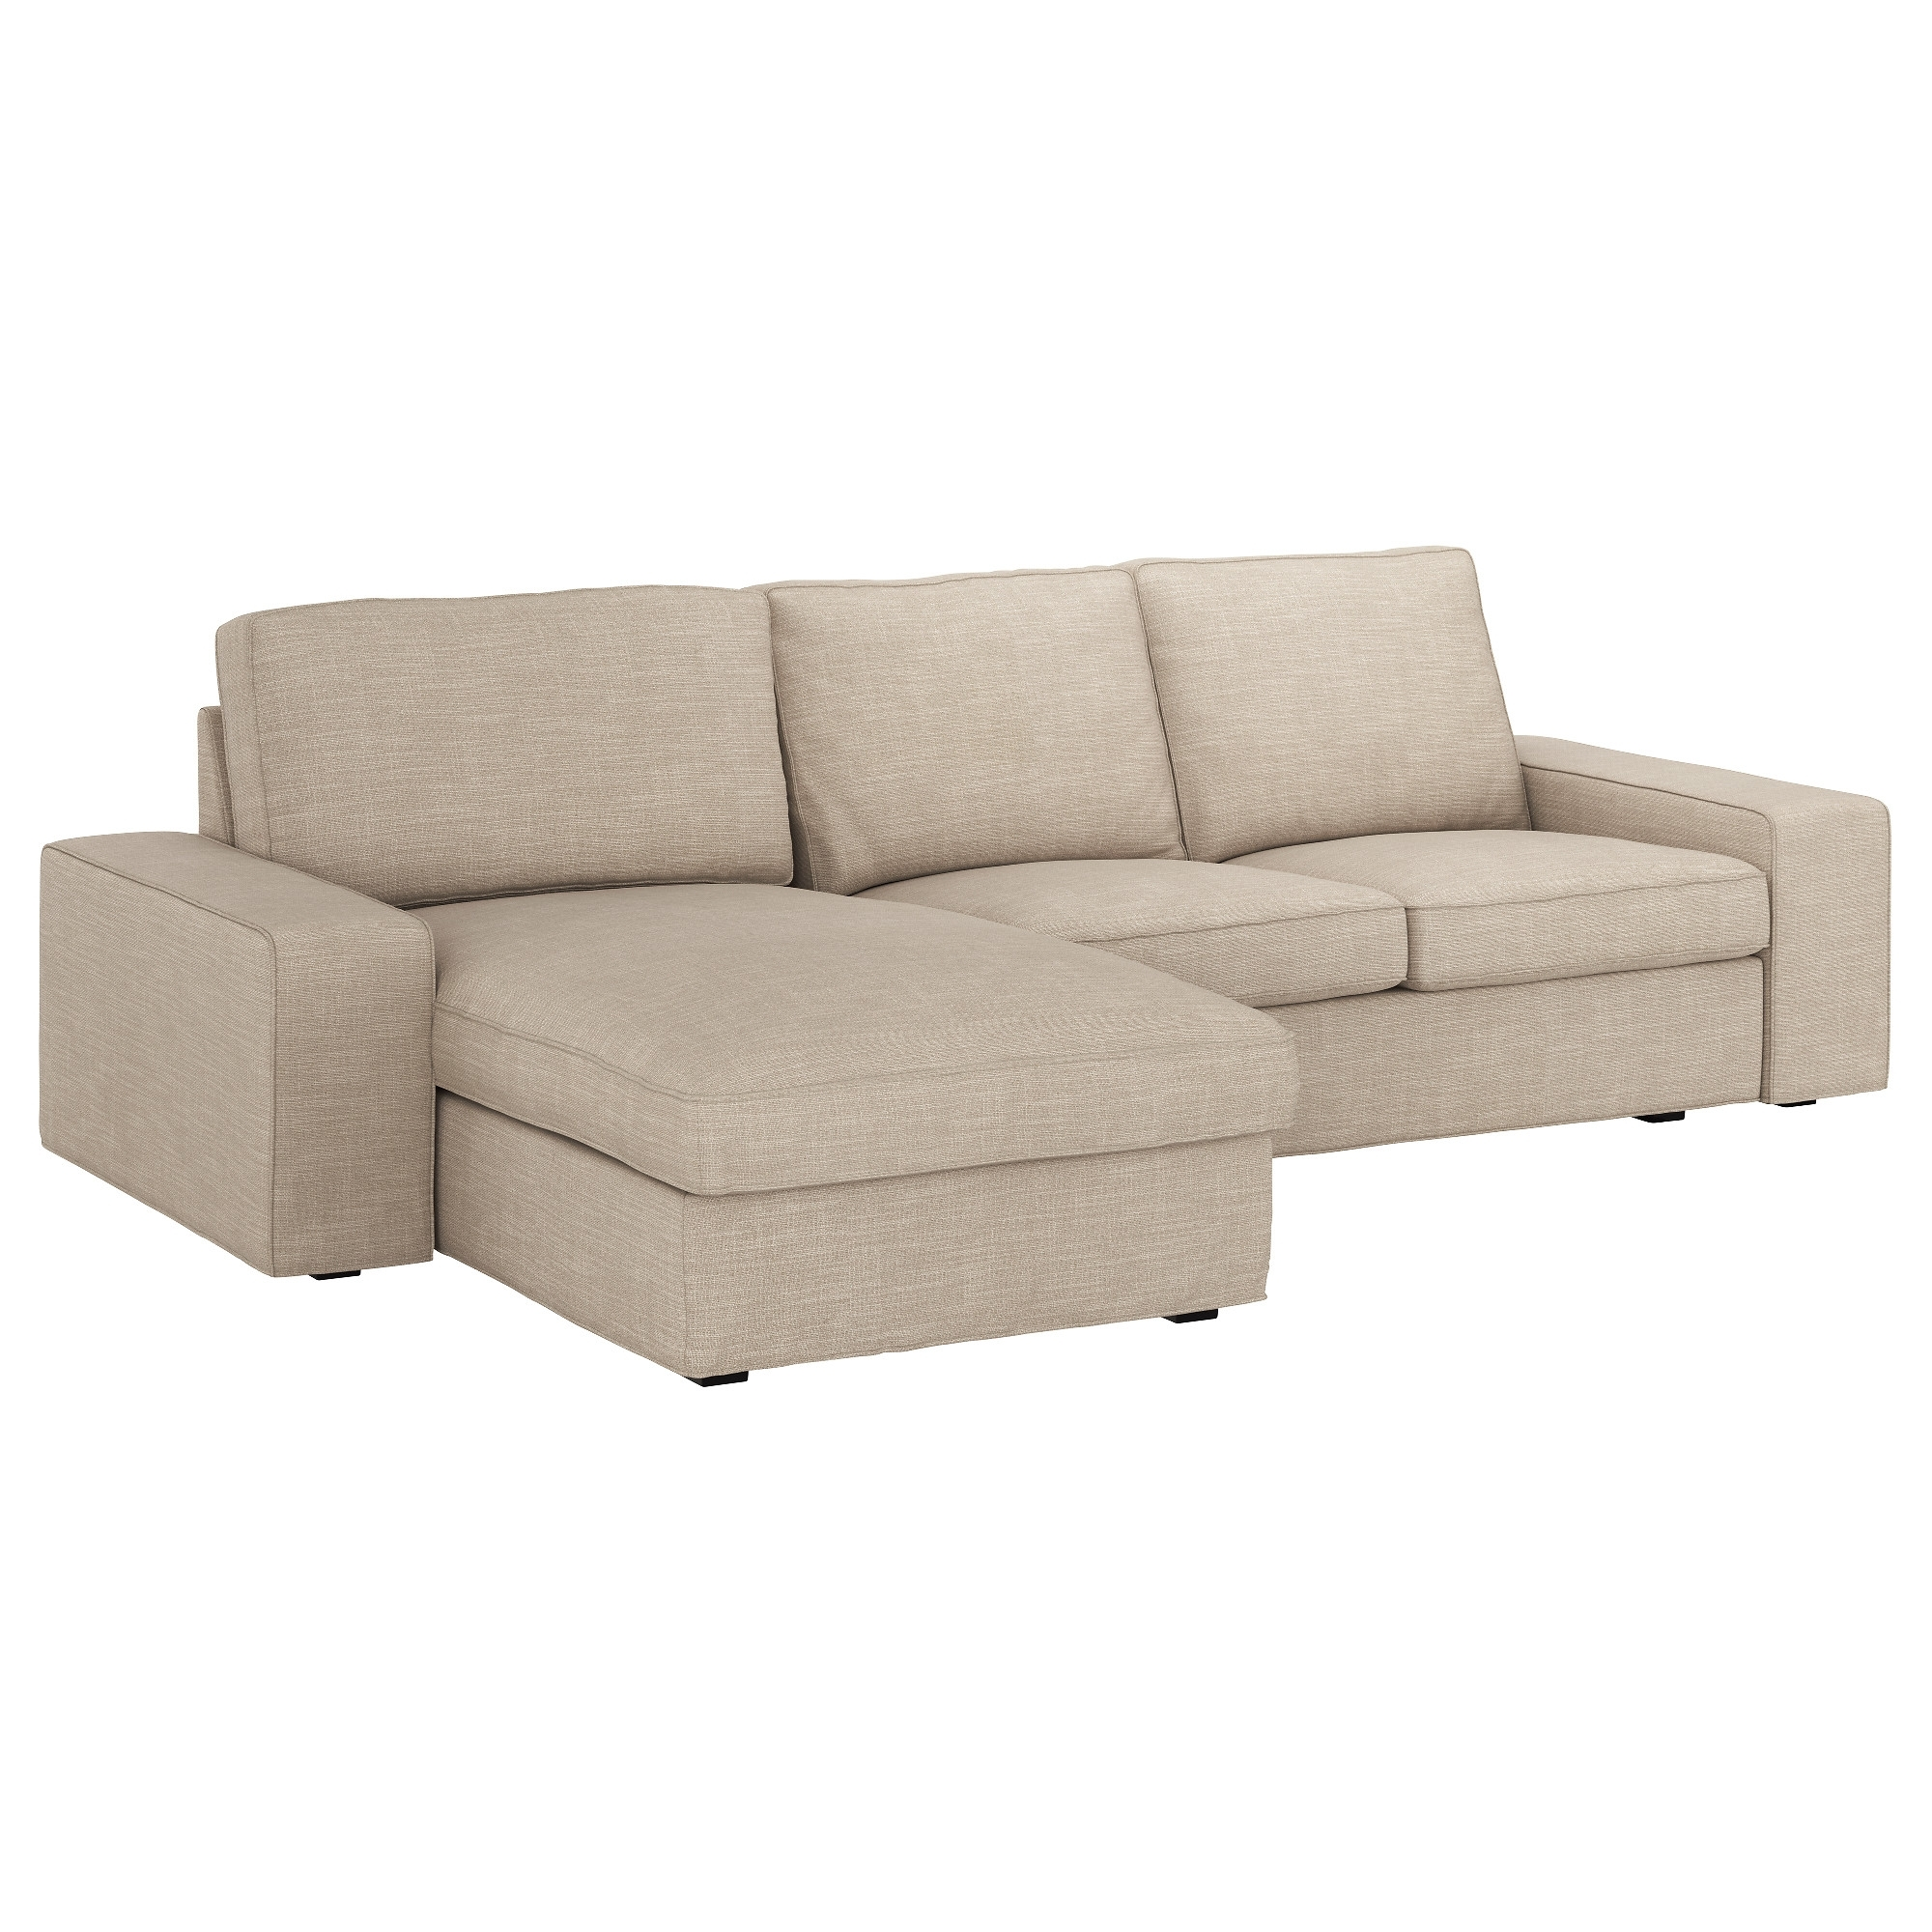 Well Known Kivik Sofa – With Chaise/hillared Anthracite – Ikea Within Sofas With Chaise Lounge (View 14 of 15)